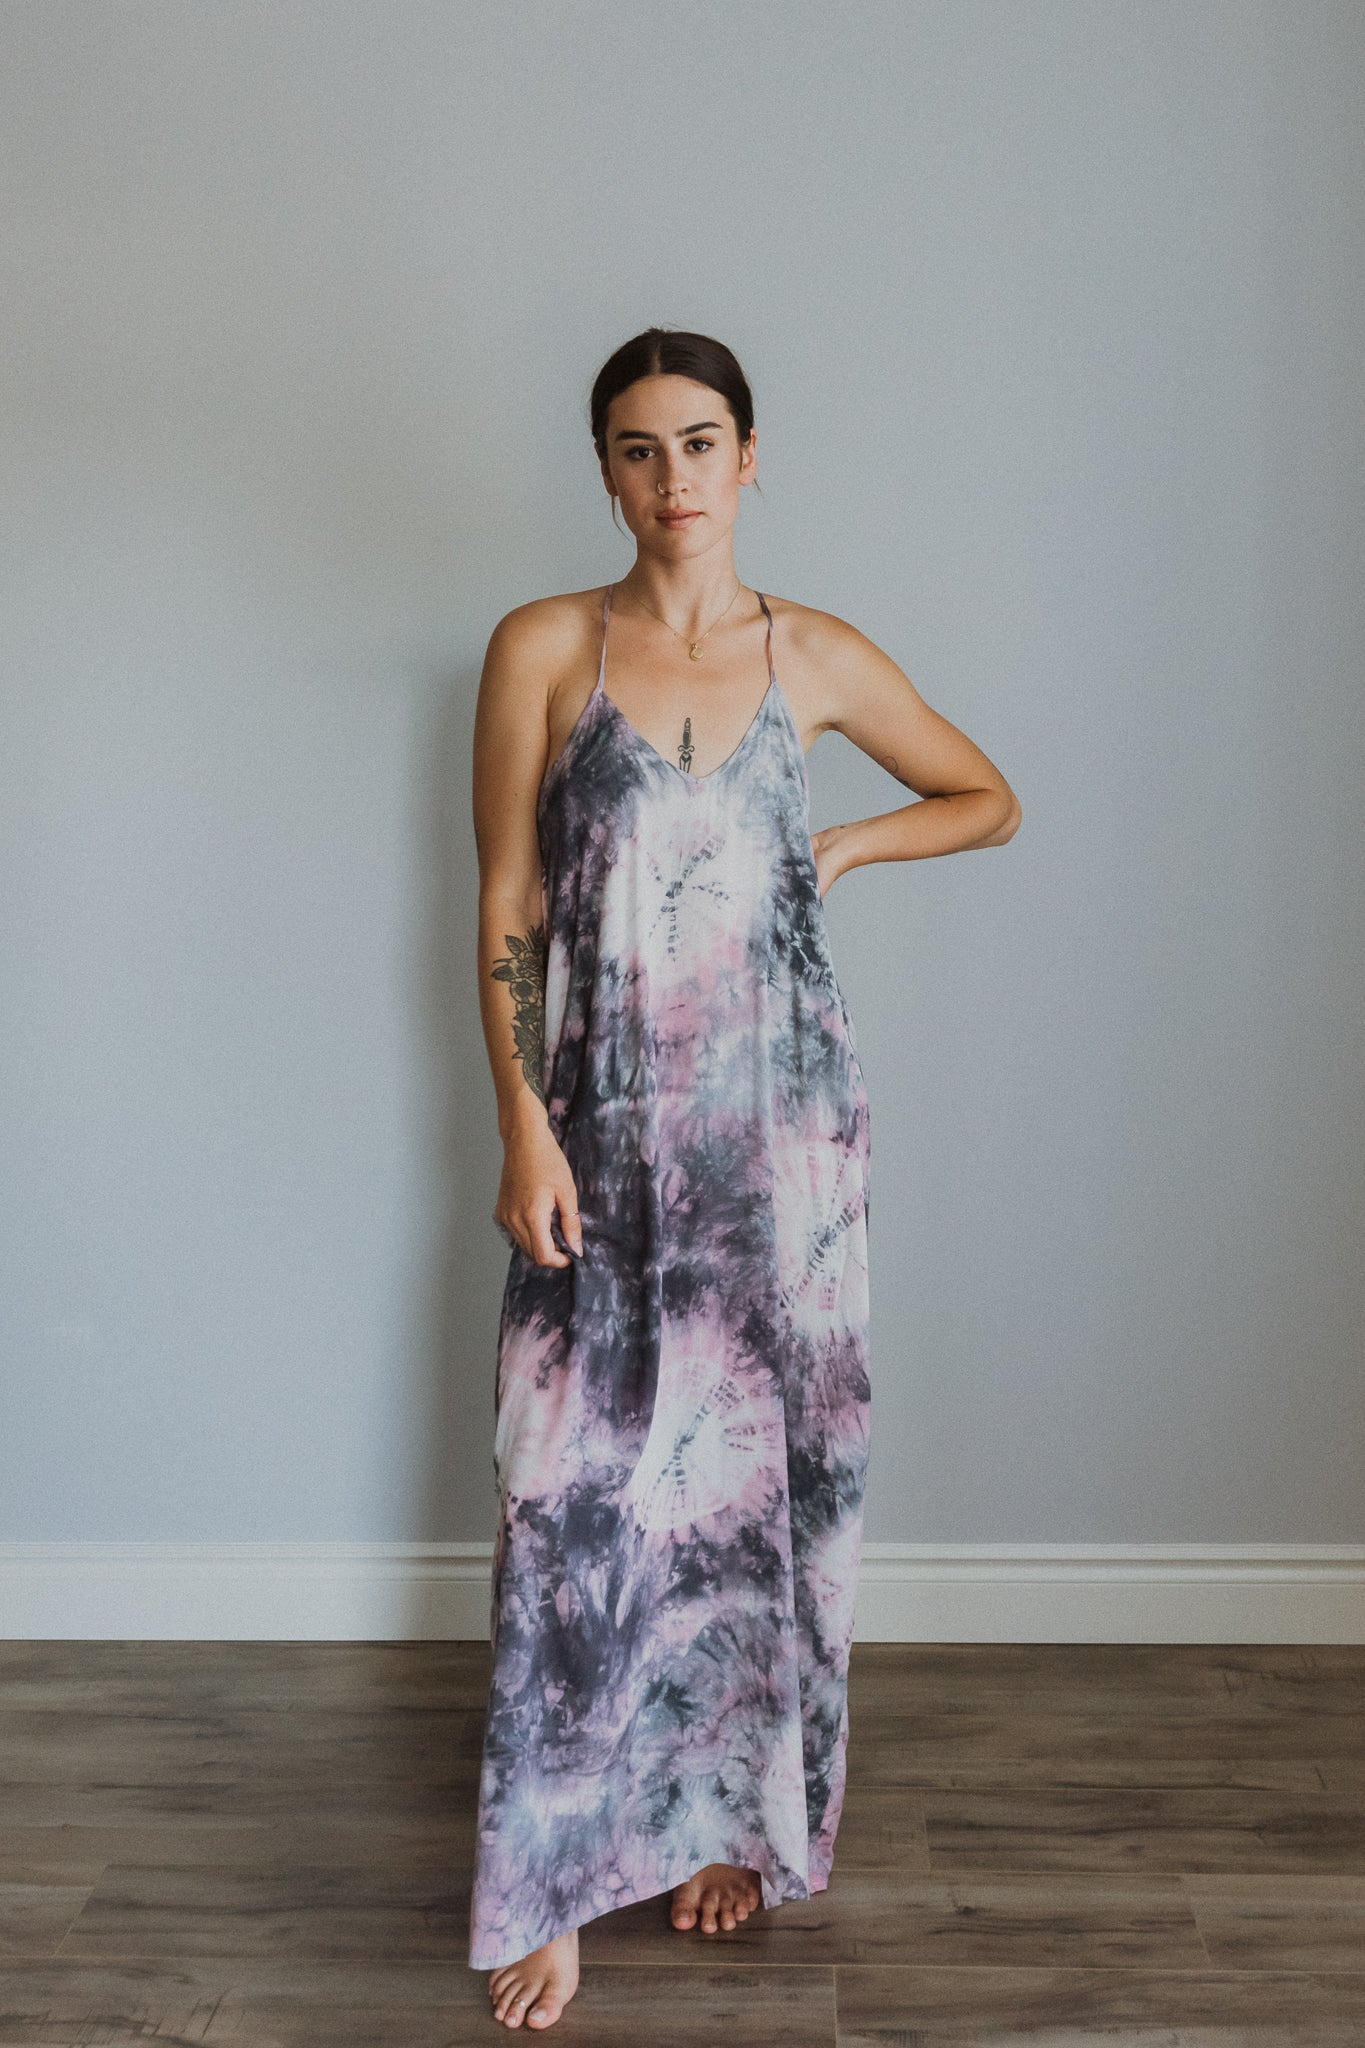 xSOLD OUTx Bright & Breezy Tie Dye Maxi Dress